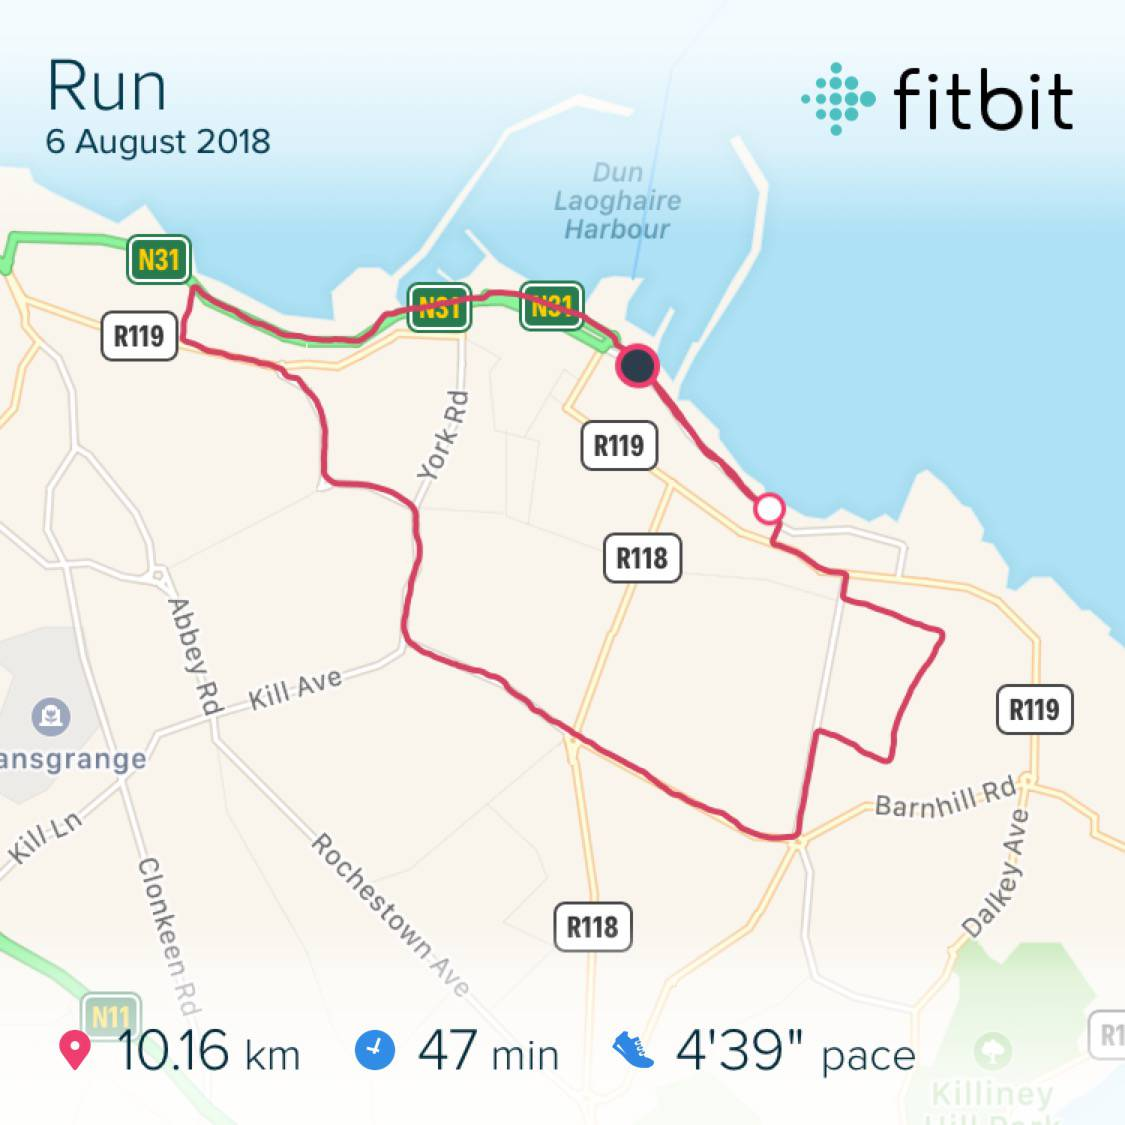 Running route and timing per Fitbit